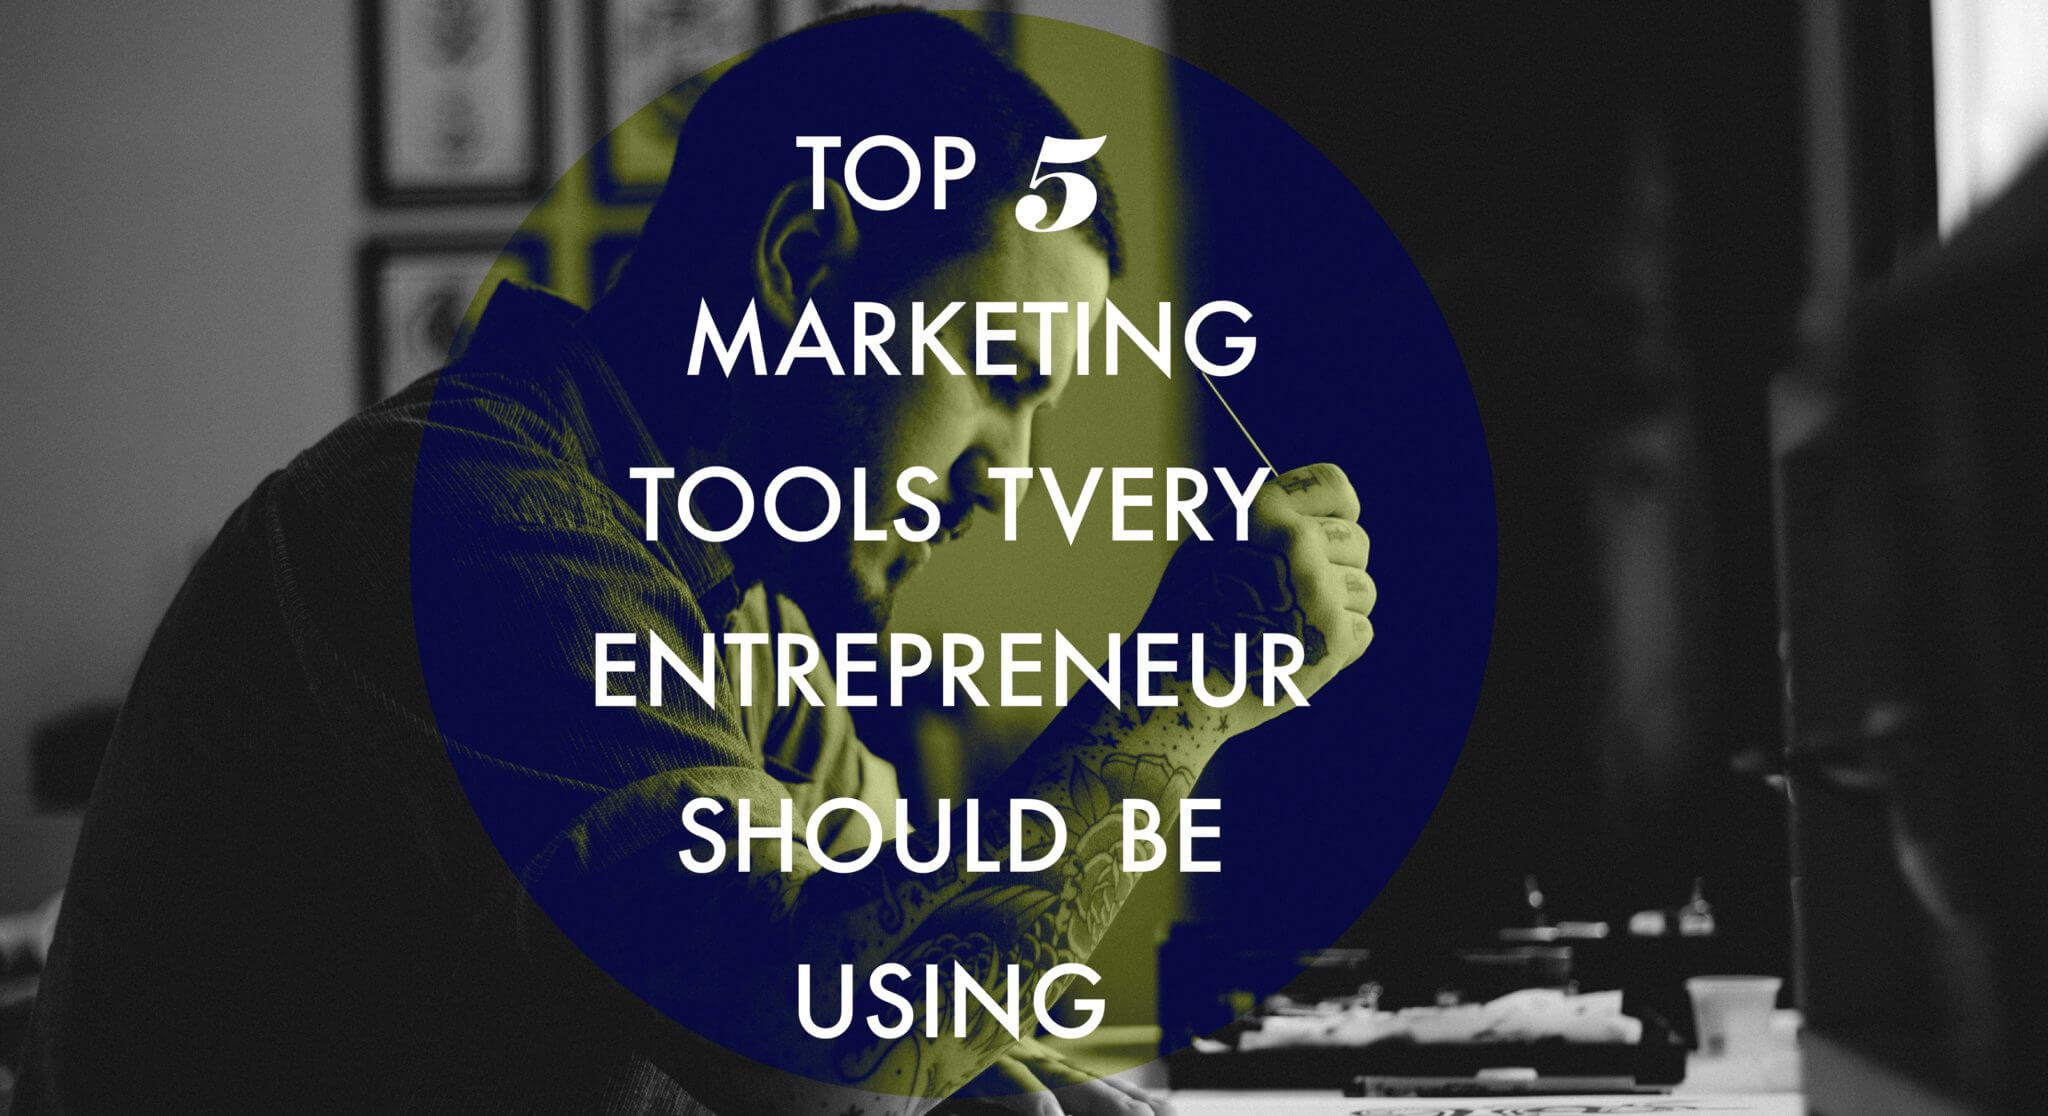 Top 5 Marketing Tools Every Entrepreneur Should Be Using